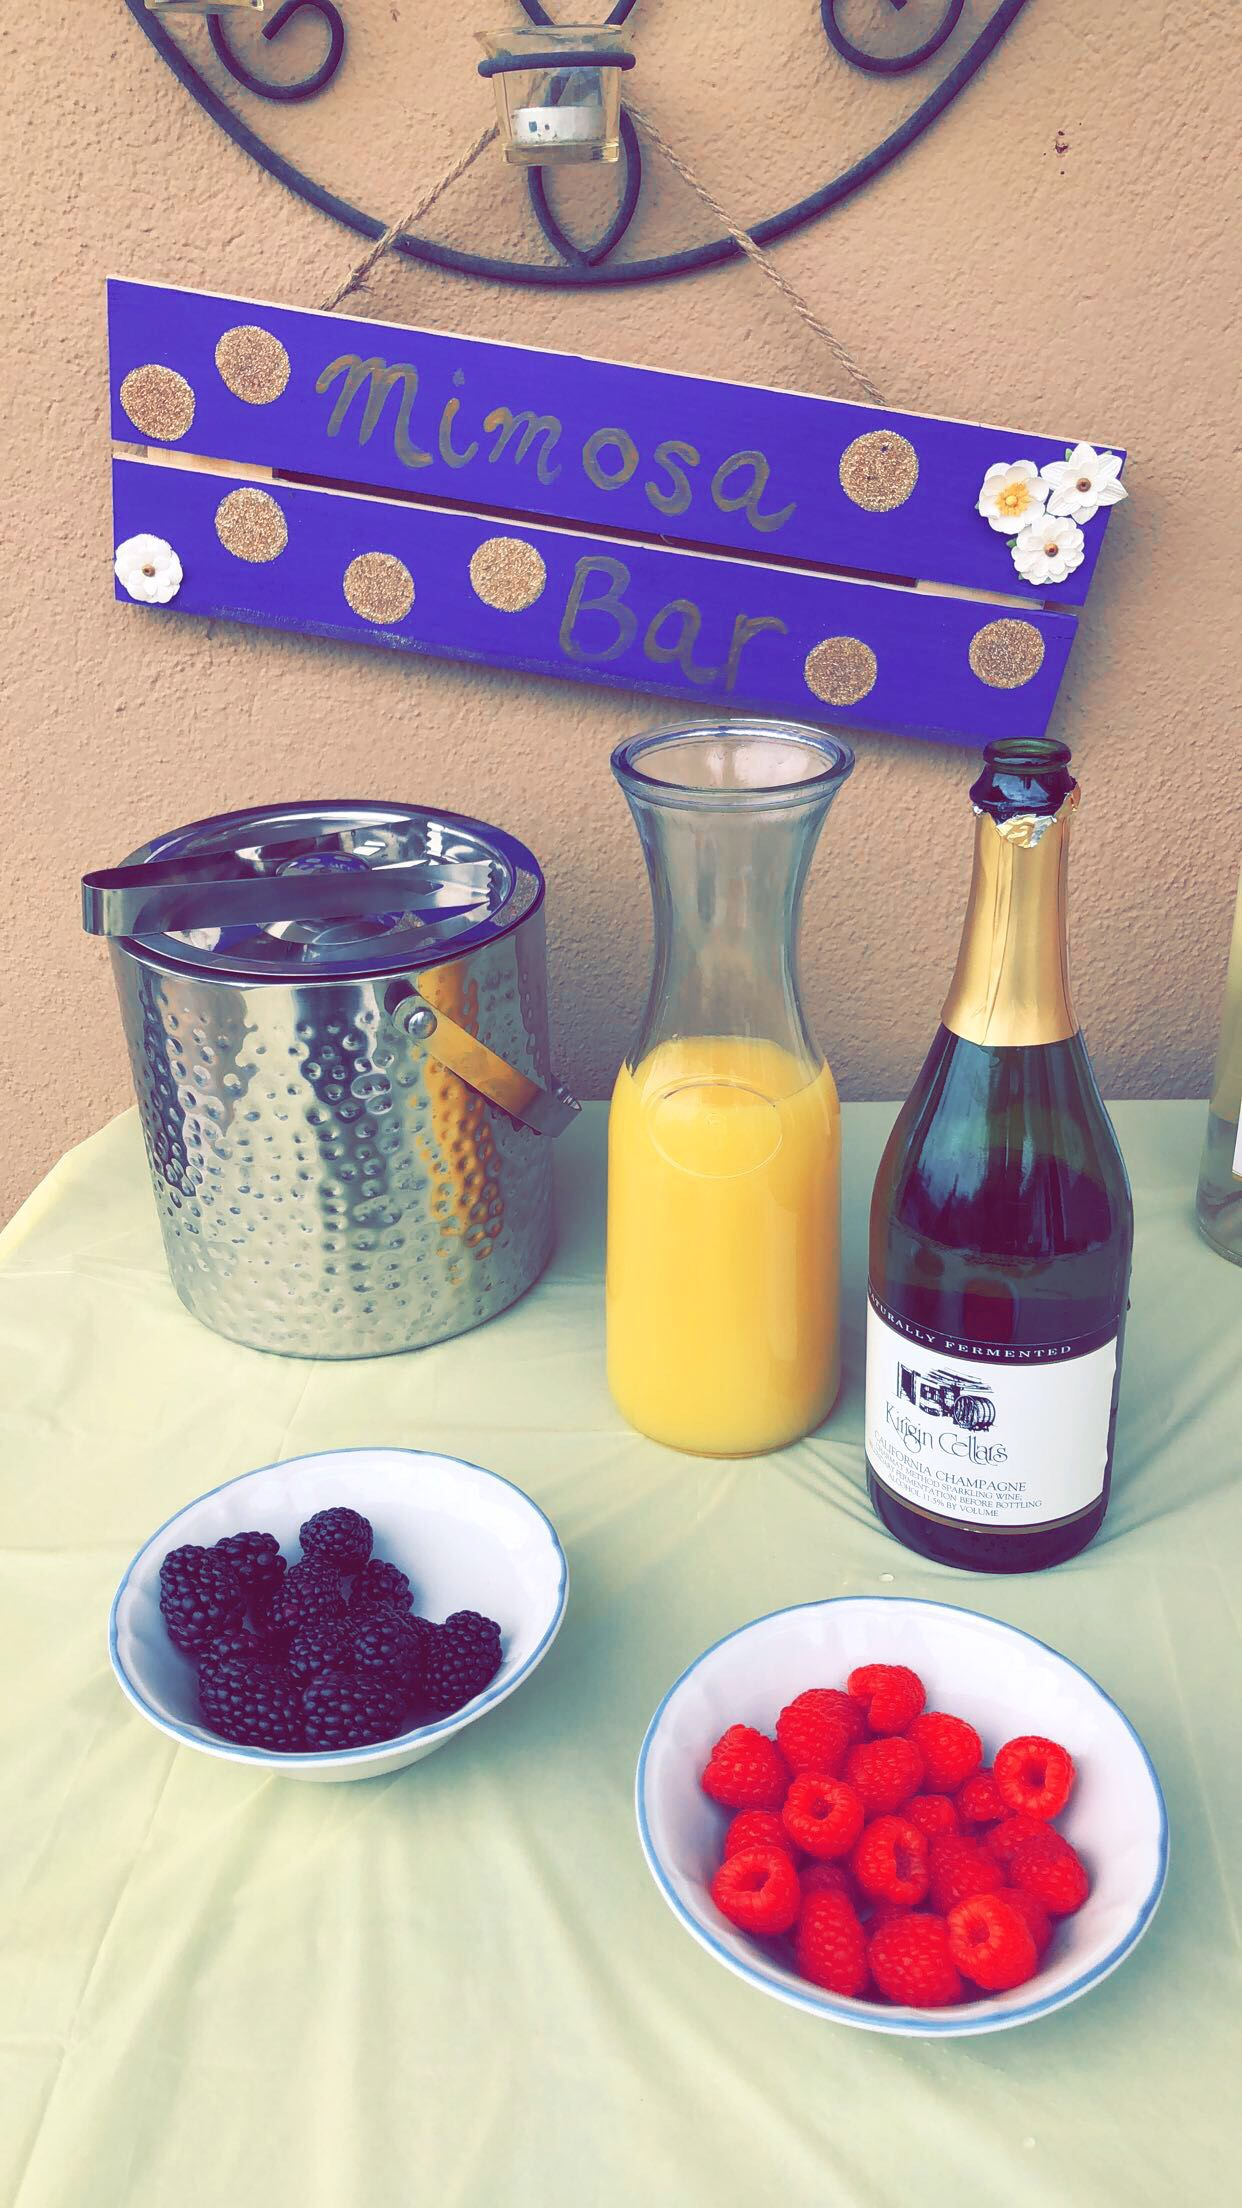 Happy National Mimosa Day!